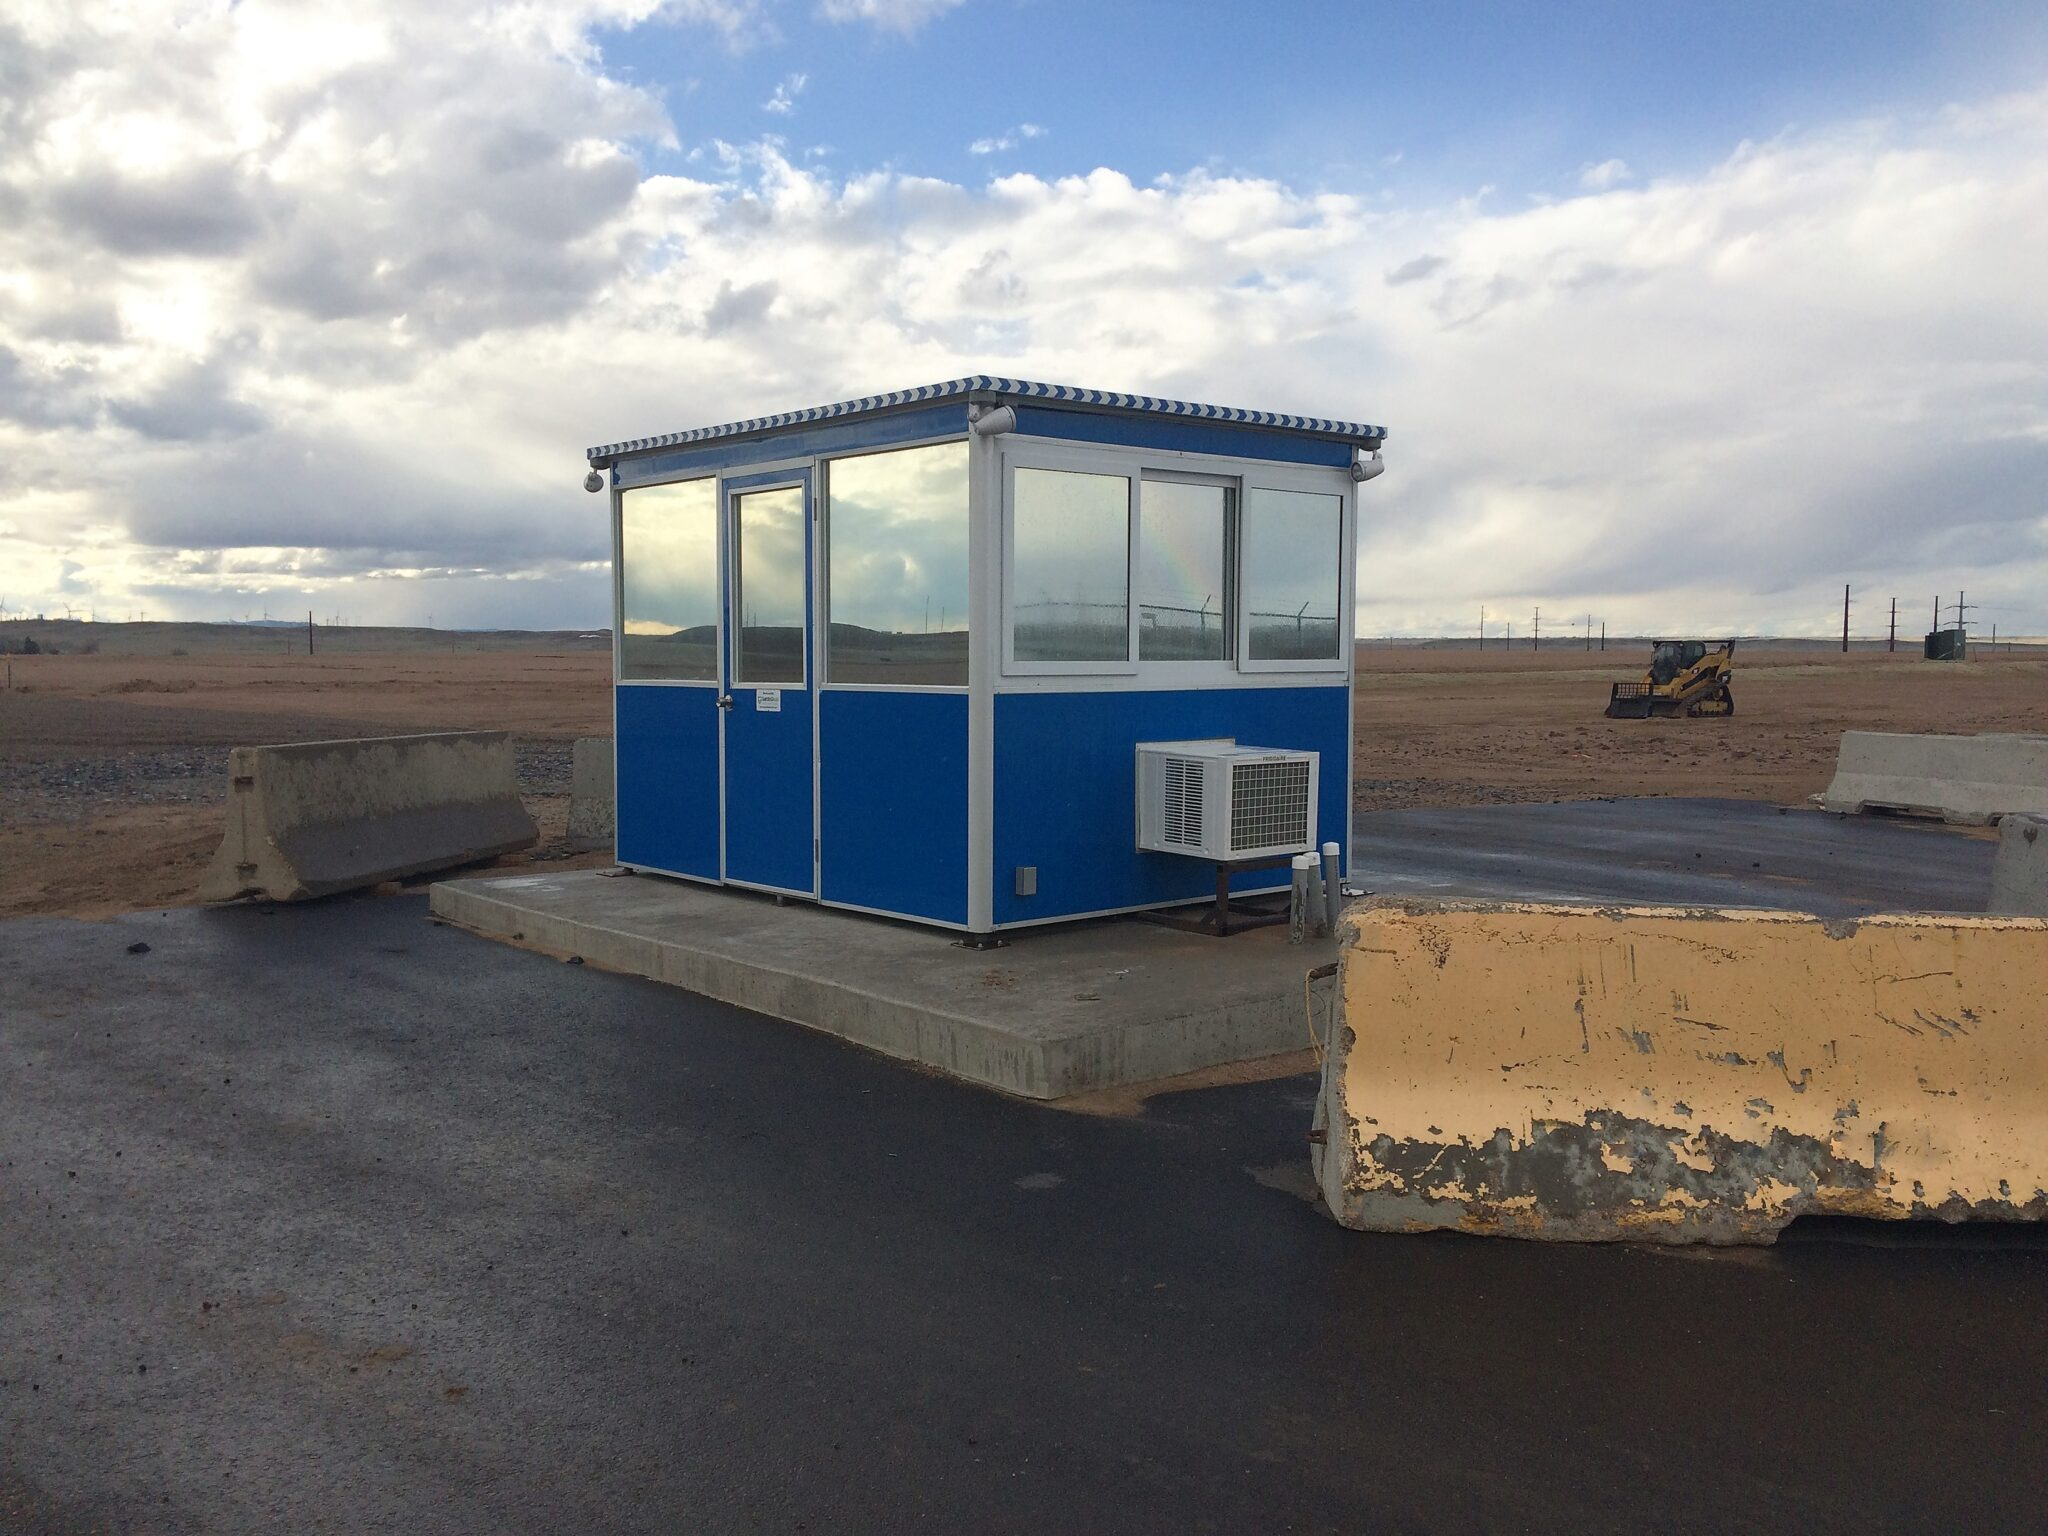 8x10 Security Guard Booth in Sandston, VA with Built-in AC, Breaker Panel Box,  and Ethernet Port and Phone Line